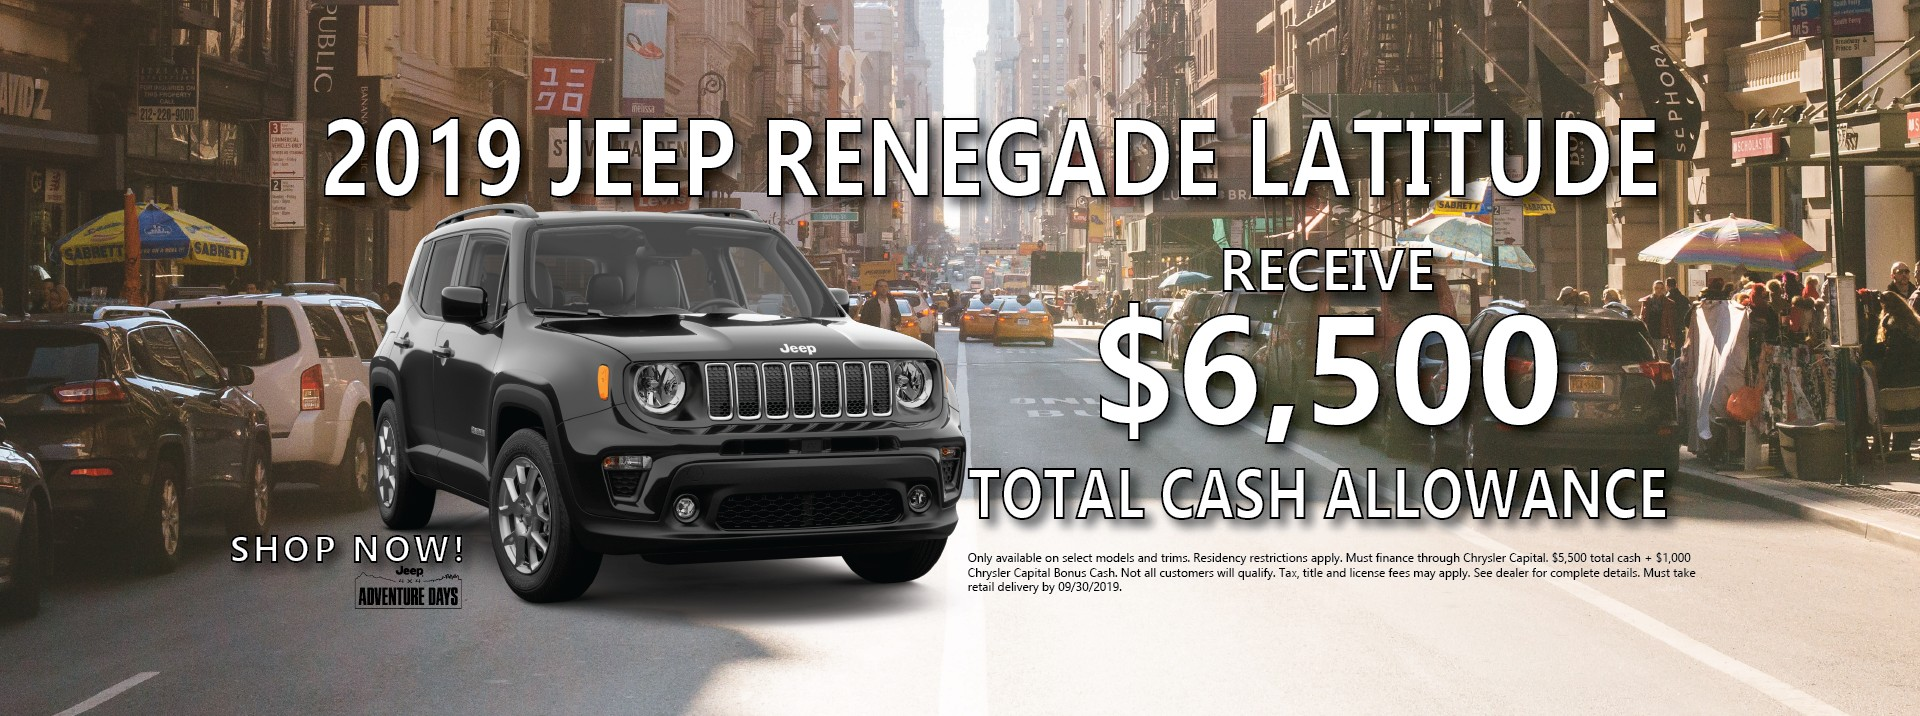 2019 Jeep Renegade Finance Offer